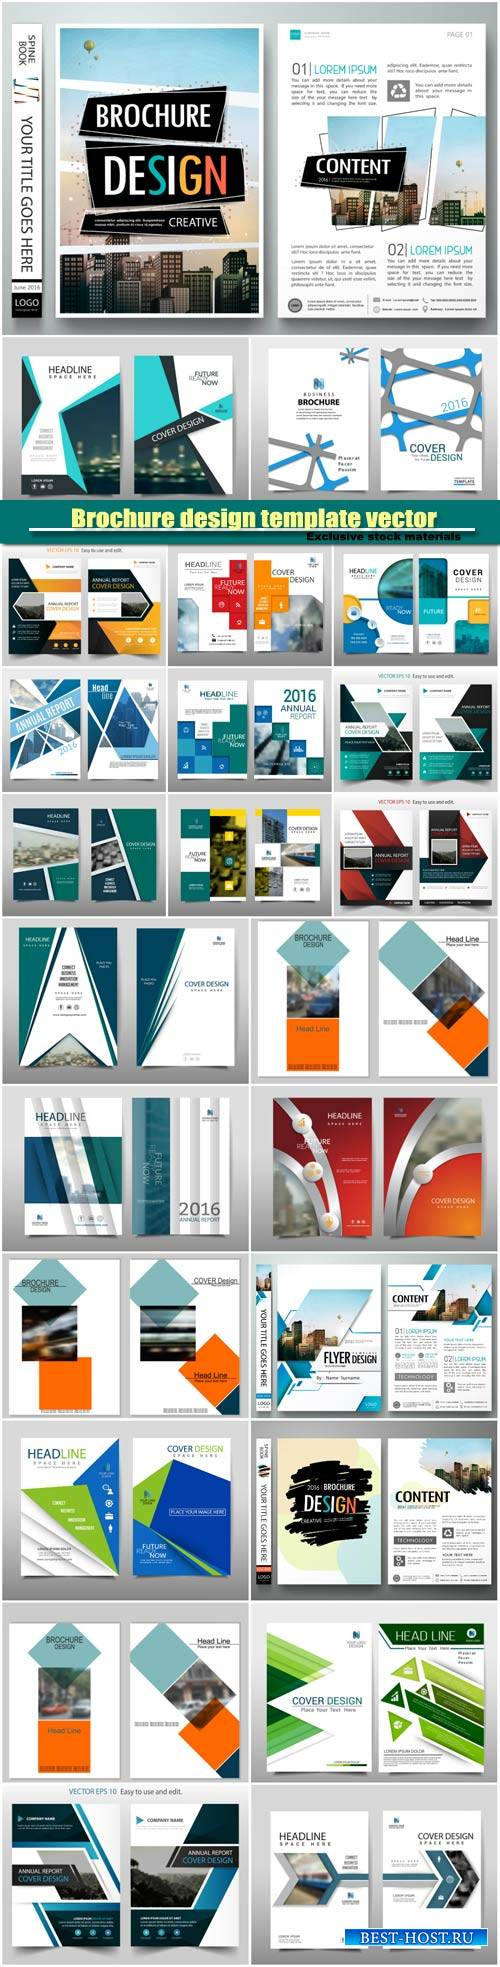 Brochure design template vector layout, cover book portfolio presentation p ...